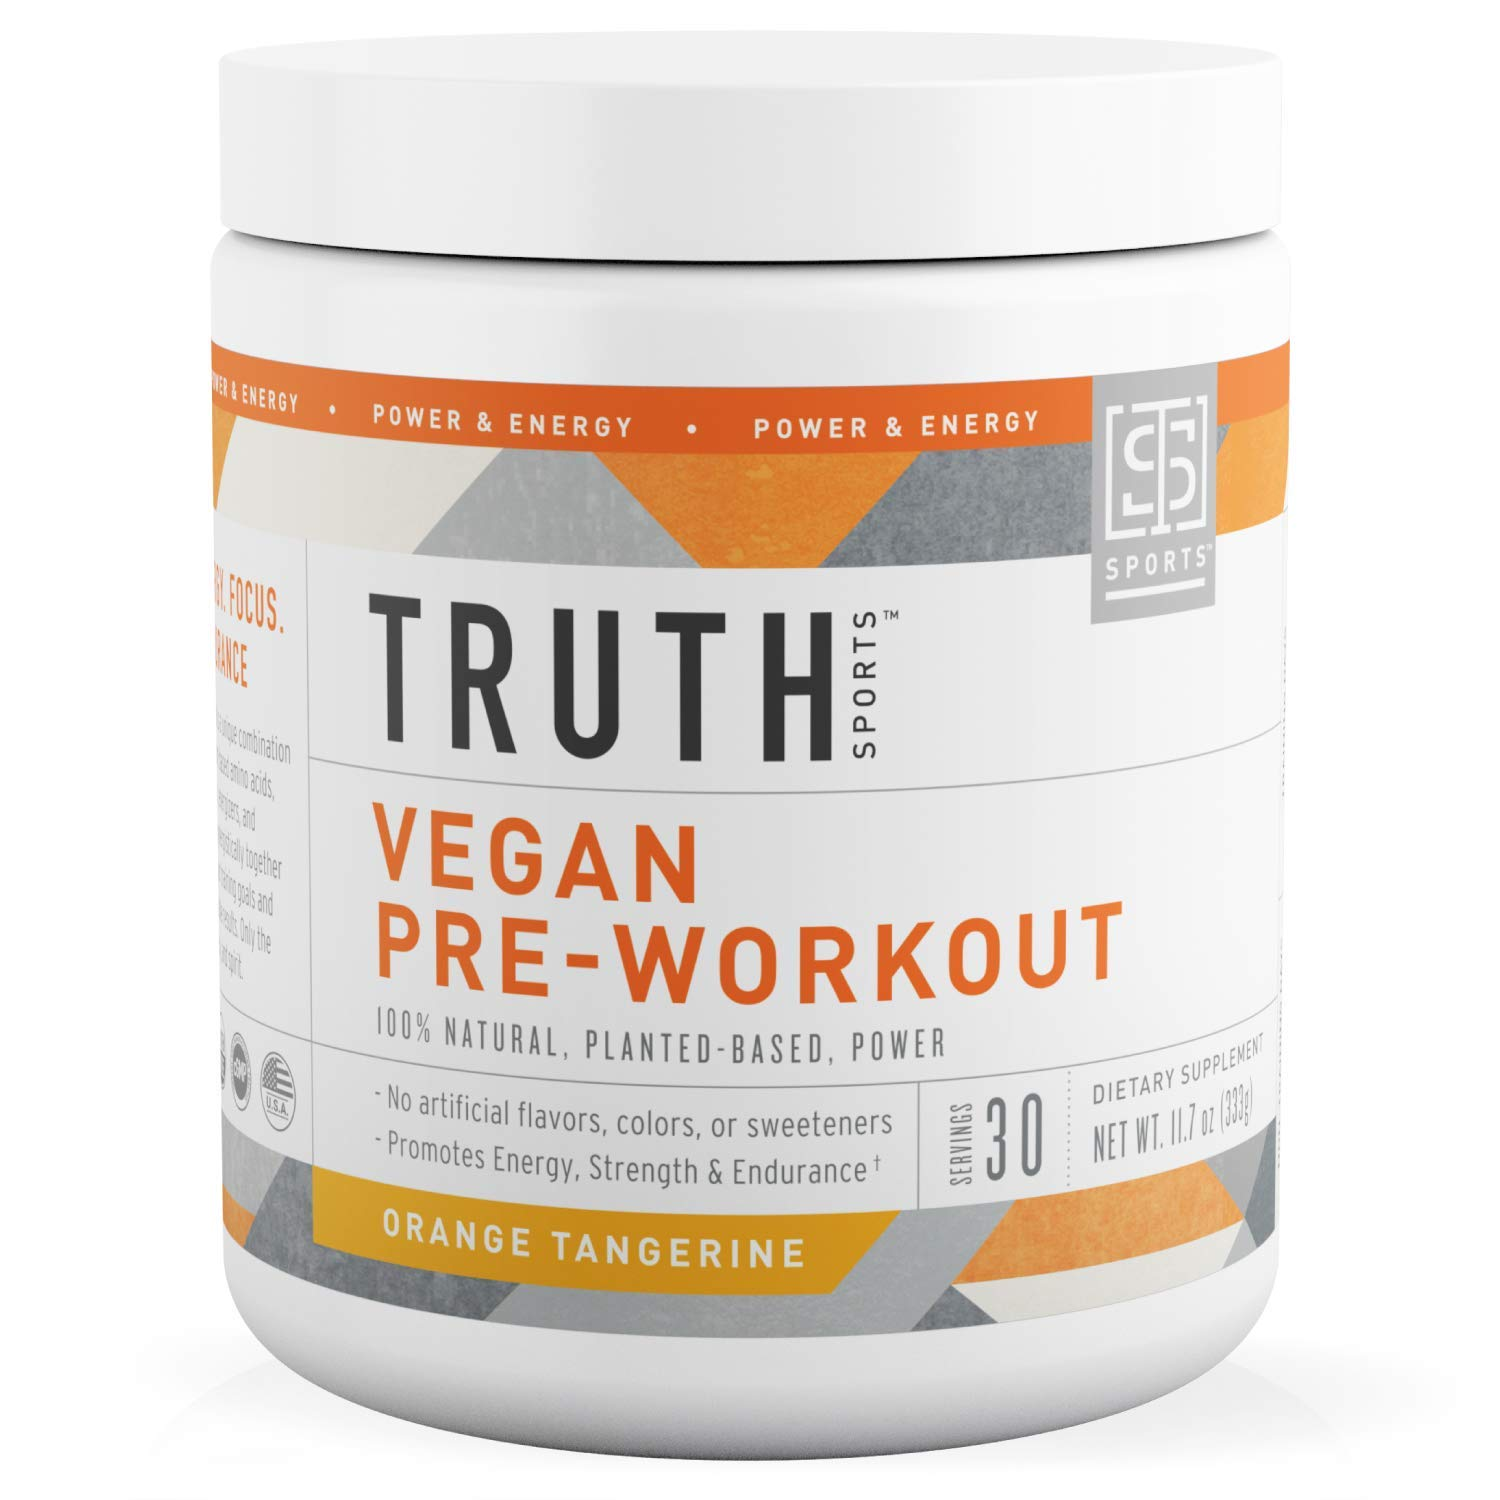 All Natural Vegan Pre Workout Powder- Plant Based, Keto & Vegan Friendly- Energy, Focus & Performance - Men & Women | Boost Muscle Strength & Endurance- Truth Nutrition (Orange Tangerine, 30 Servings) by Truth Nutrition